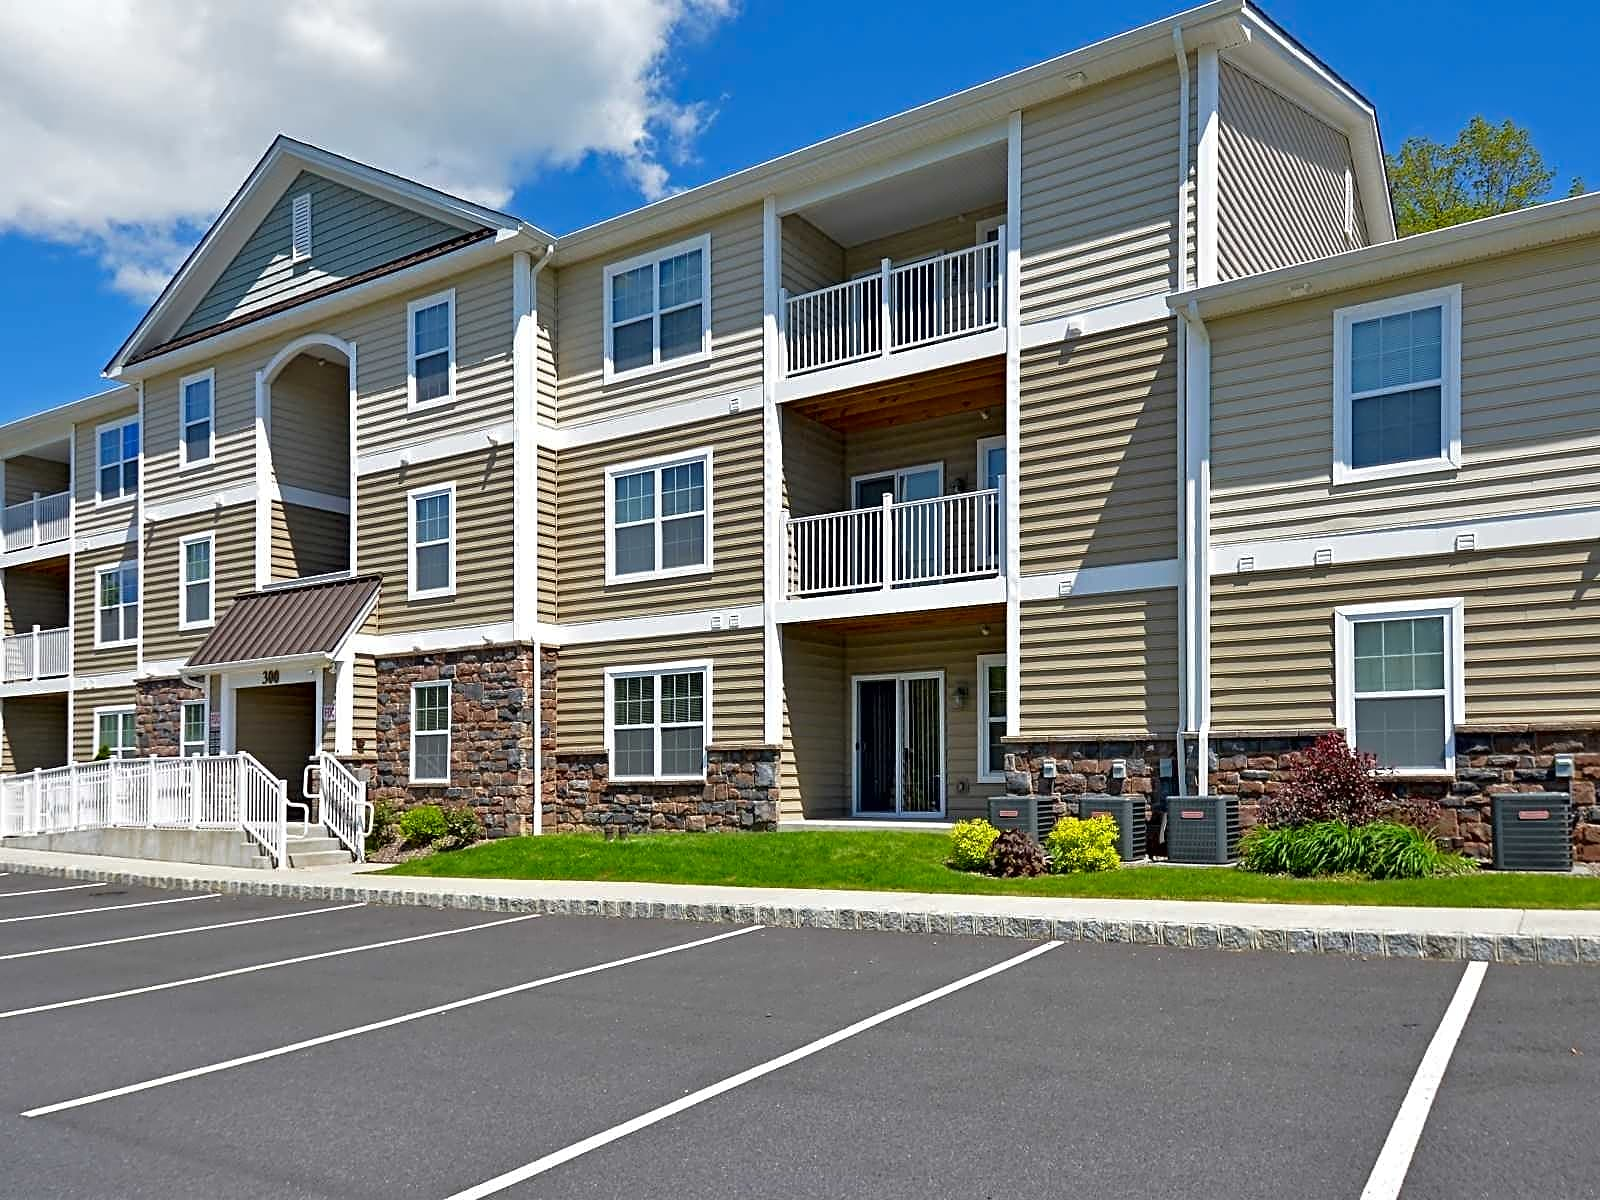 Spring Pointe Apartments - Best Appartment Image 2018